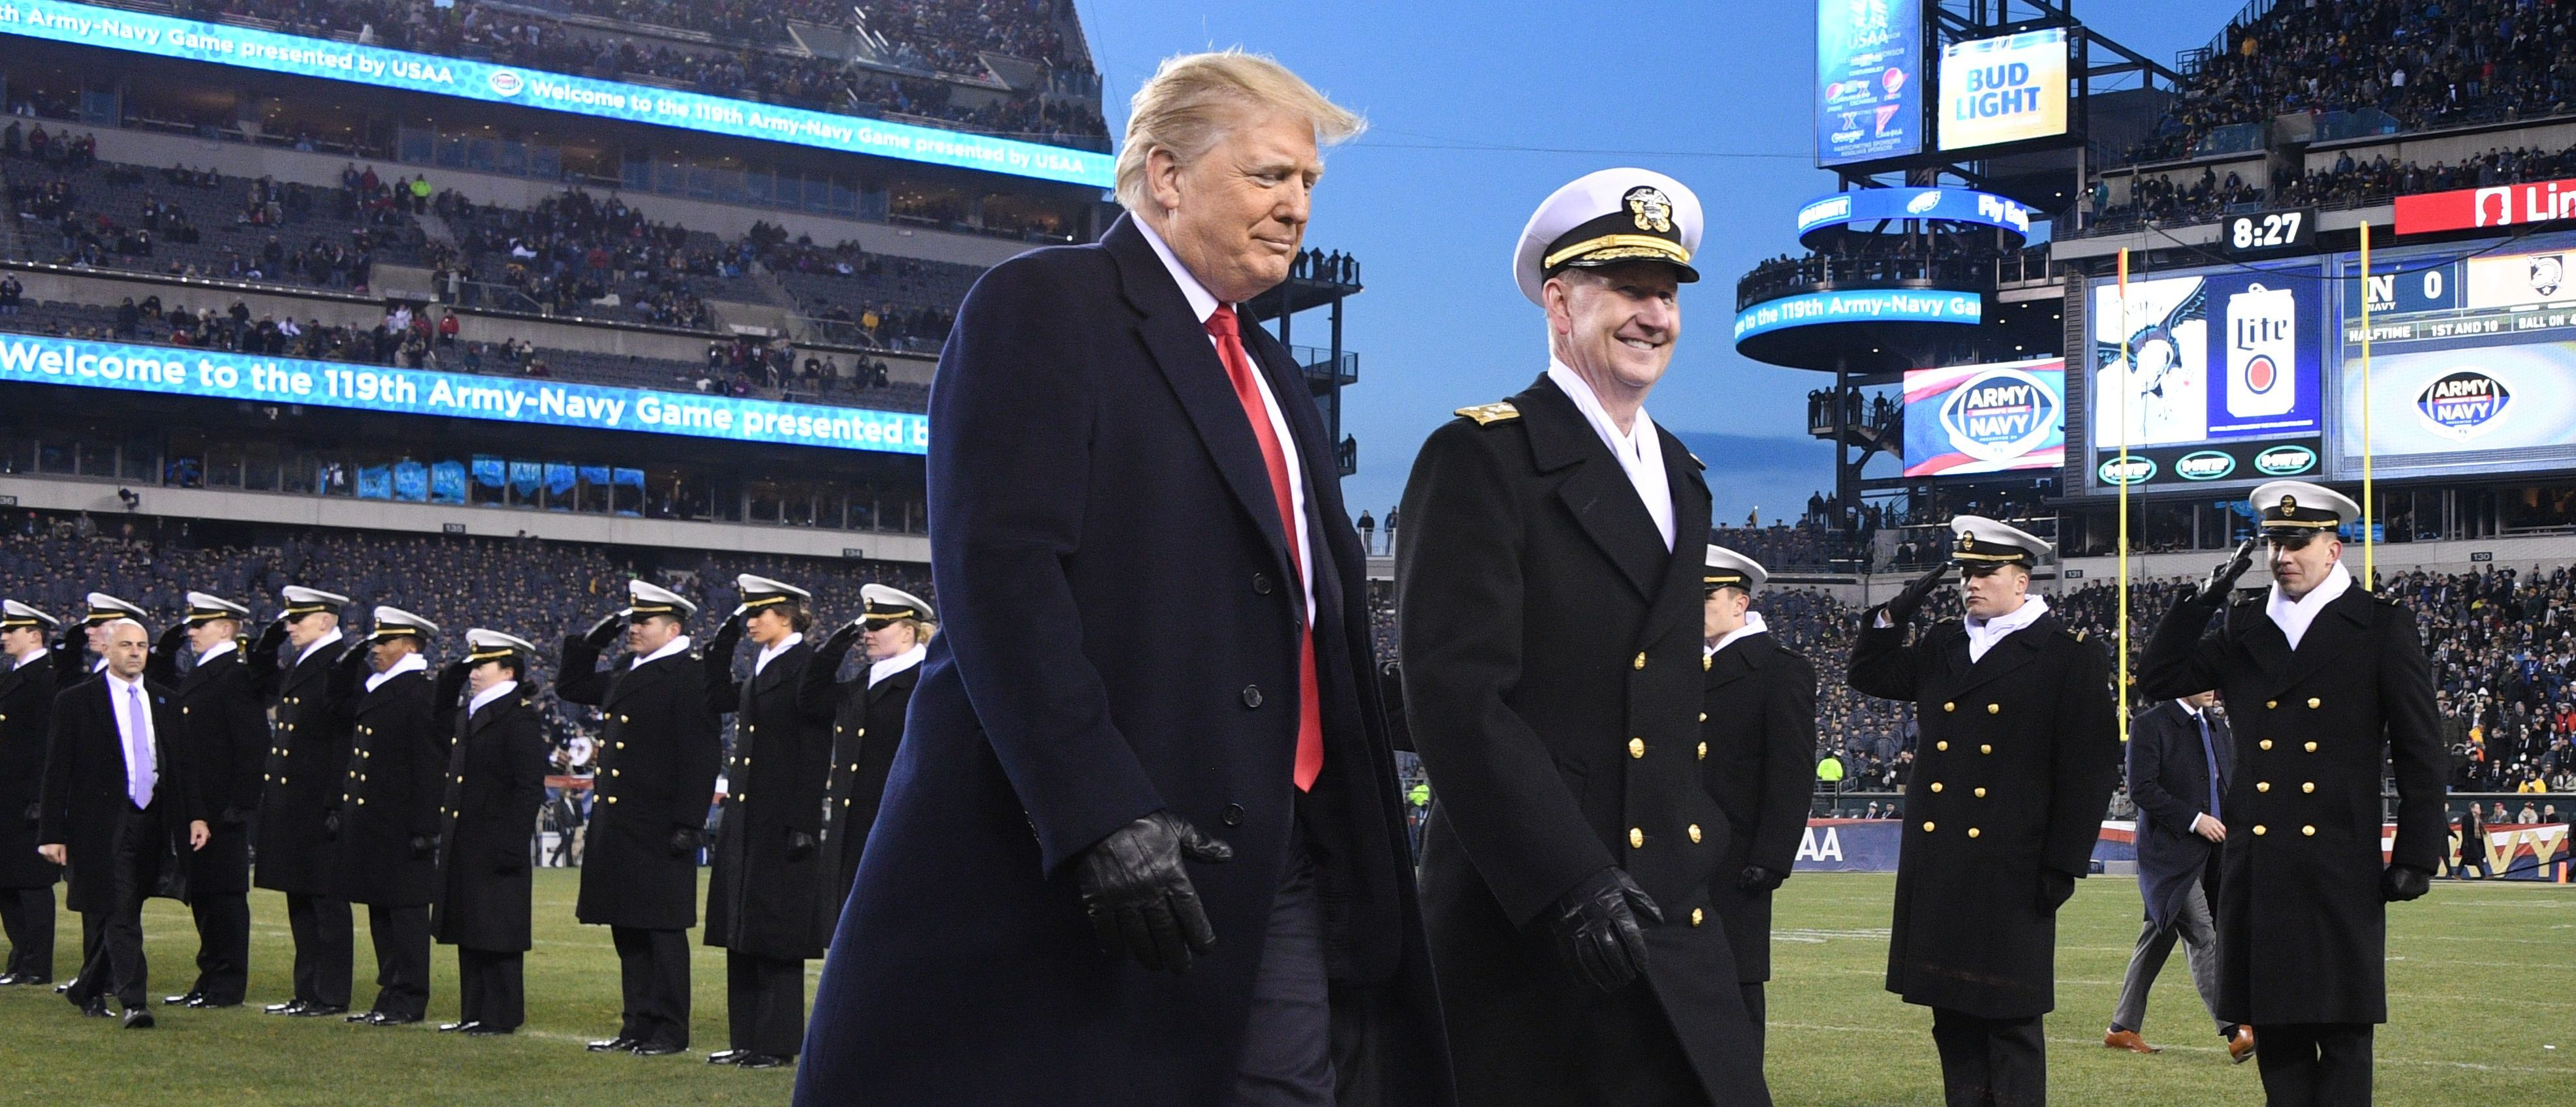 US President Donald Trump attends the annual Army-Navy football game at Lincoln Financial Field in Philadelphia, Pennsylvania, December 8, 2018. - Trump officiated the coin toss at Lincoln Financial Field in Philadelphia between the Army Black Knights of the US Military Academy (USMA) and the Navy Midshipmen of the US Naval Academy (USNA). (Photo by Jim WATSON / AFP)